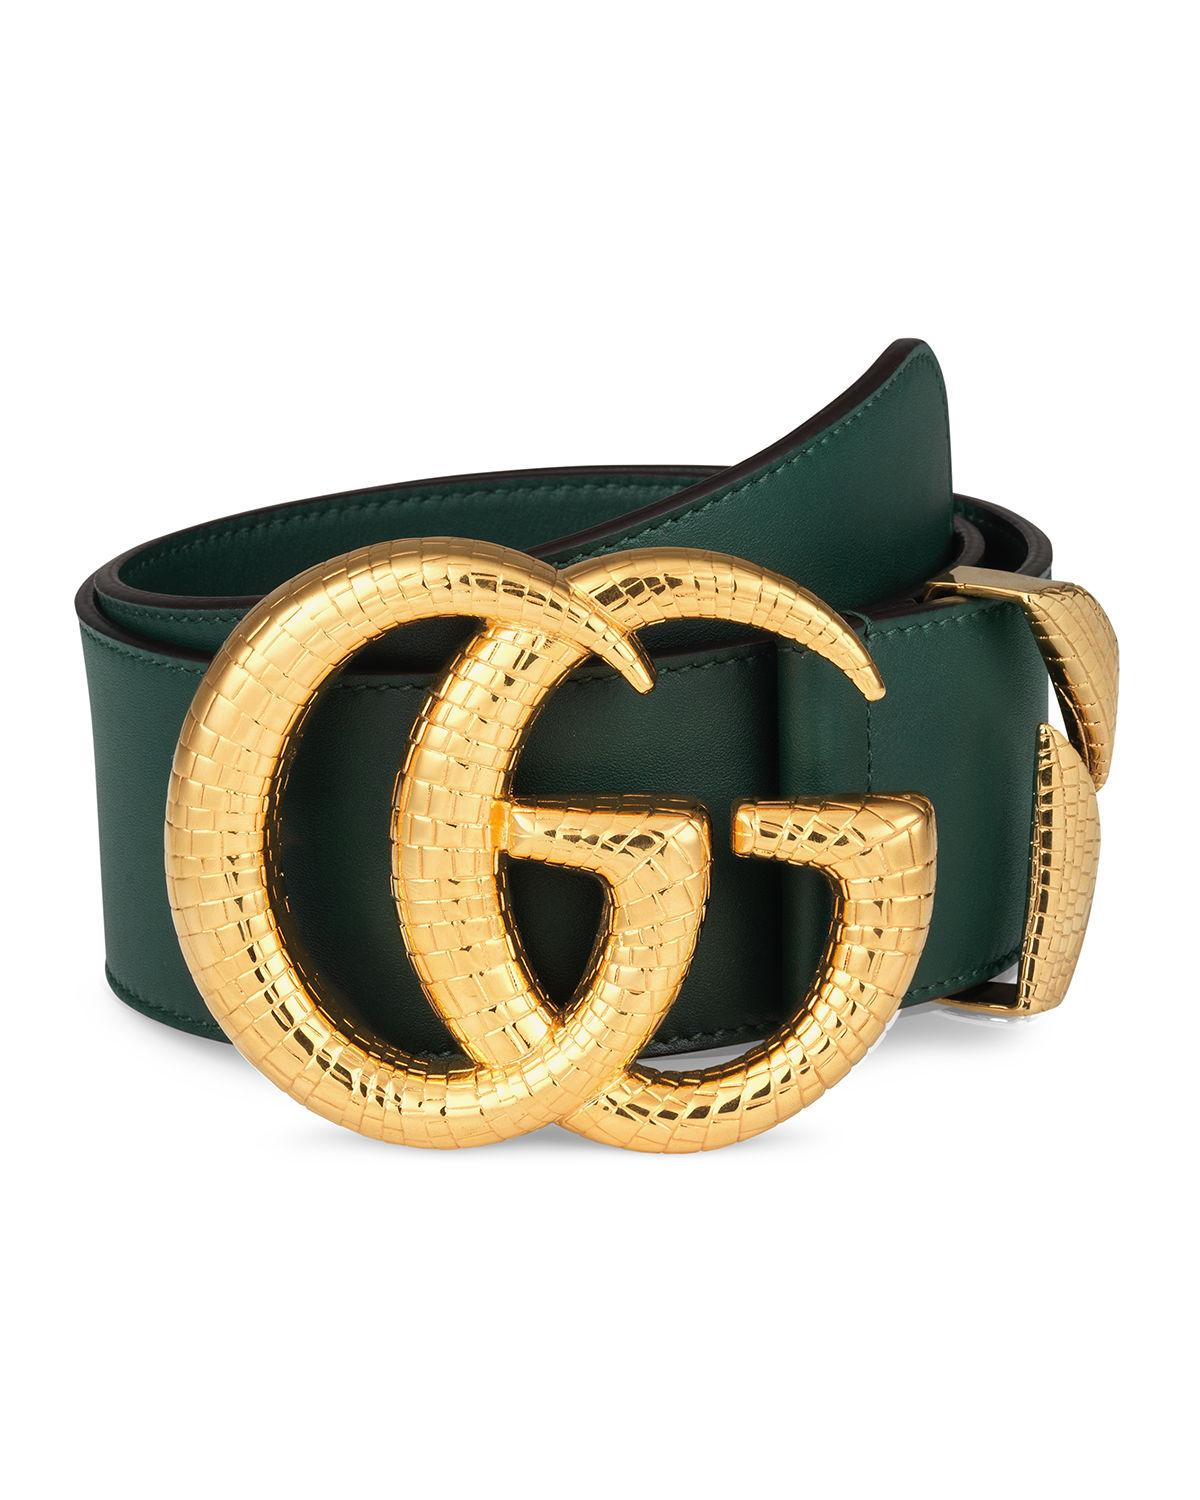 d48c0f244e74 Lyst - Gucci Smooth Leather Belt W/ Double G Buckle in Green